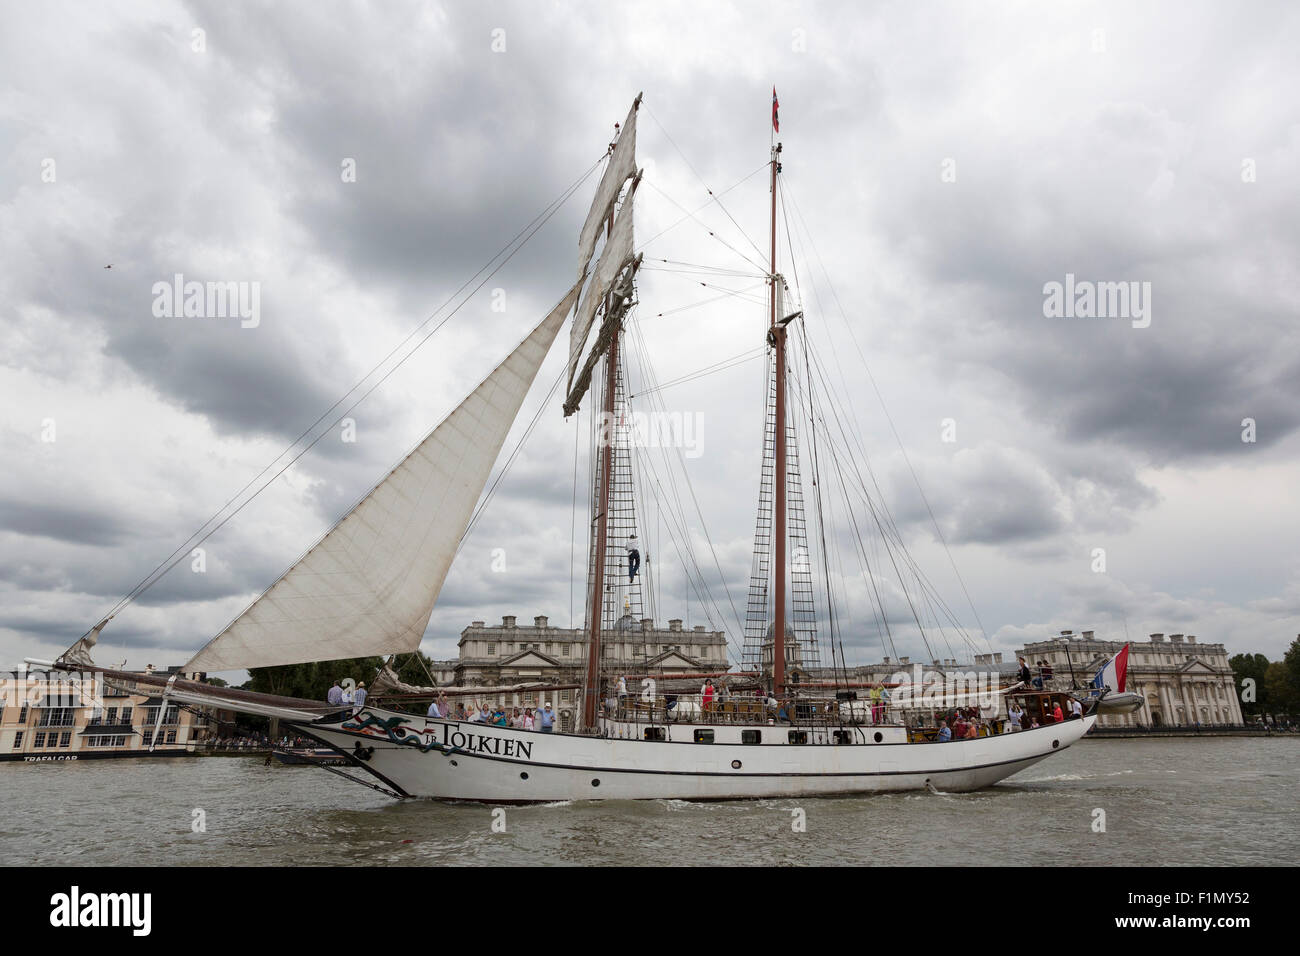 Royal Greenwich Tall Ships Festival 2015 on the River Thames with tall ship J.R. Tolkien (NL), sailing in front - Stock Image